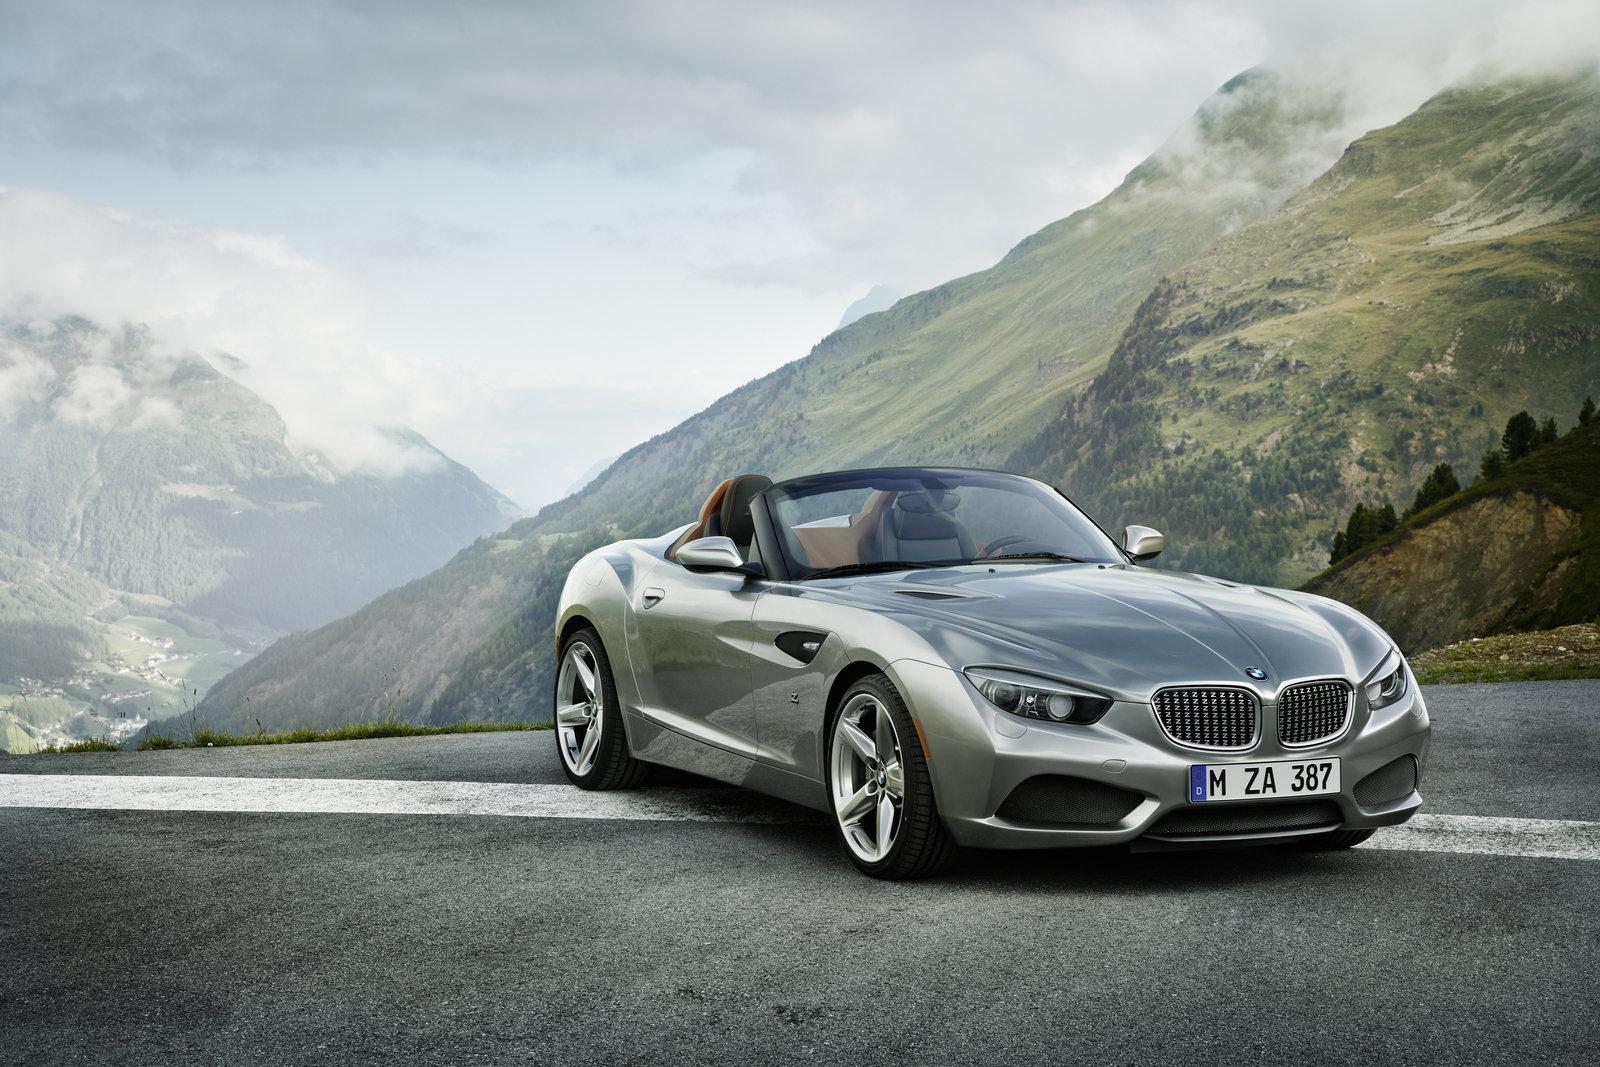 bmw z4 reviews, specs & prices - top speed